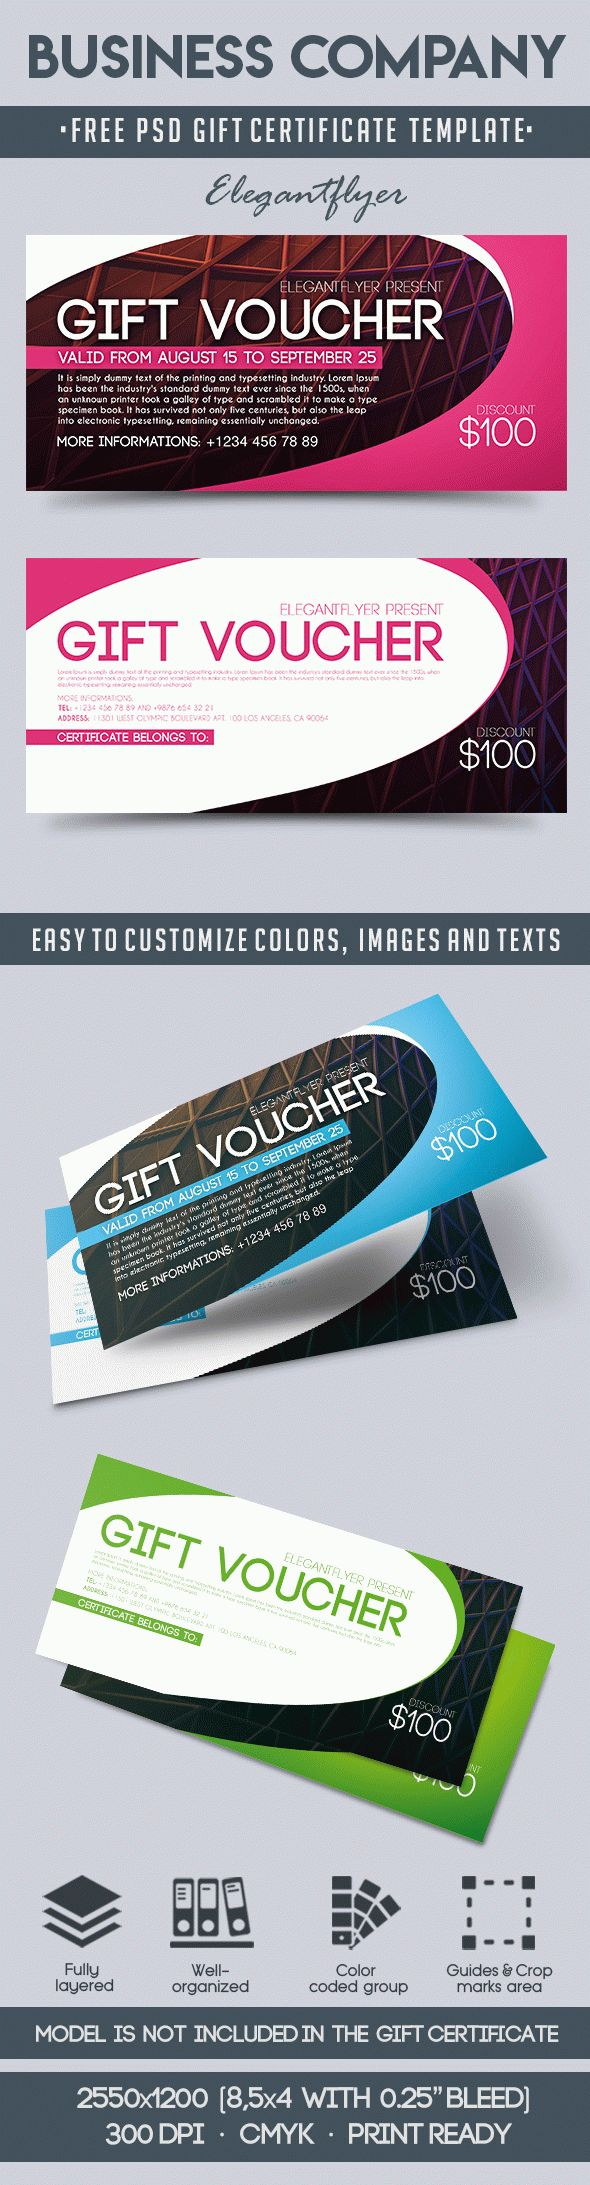 Business Company – Free Gift Certificate PSD Template